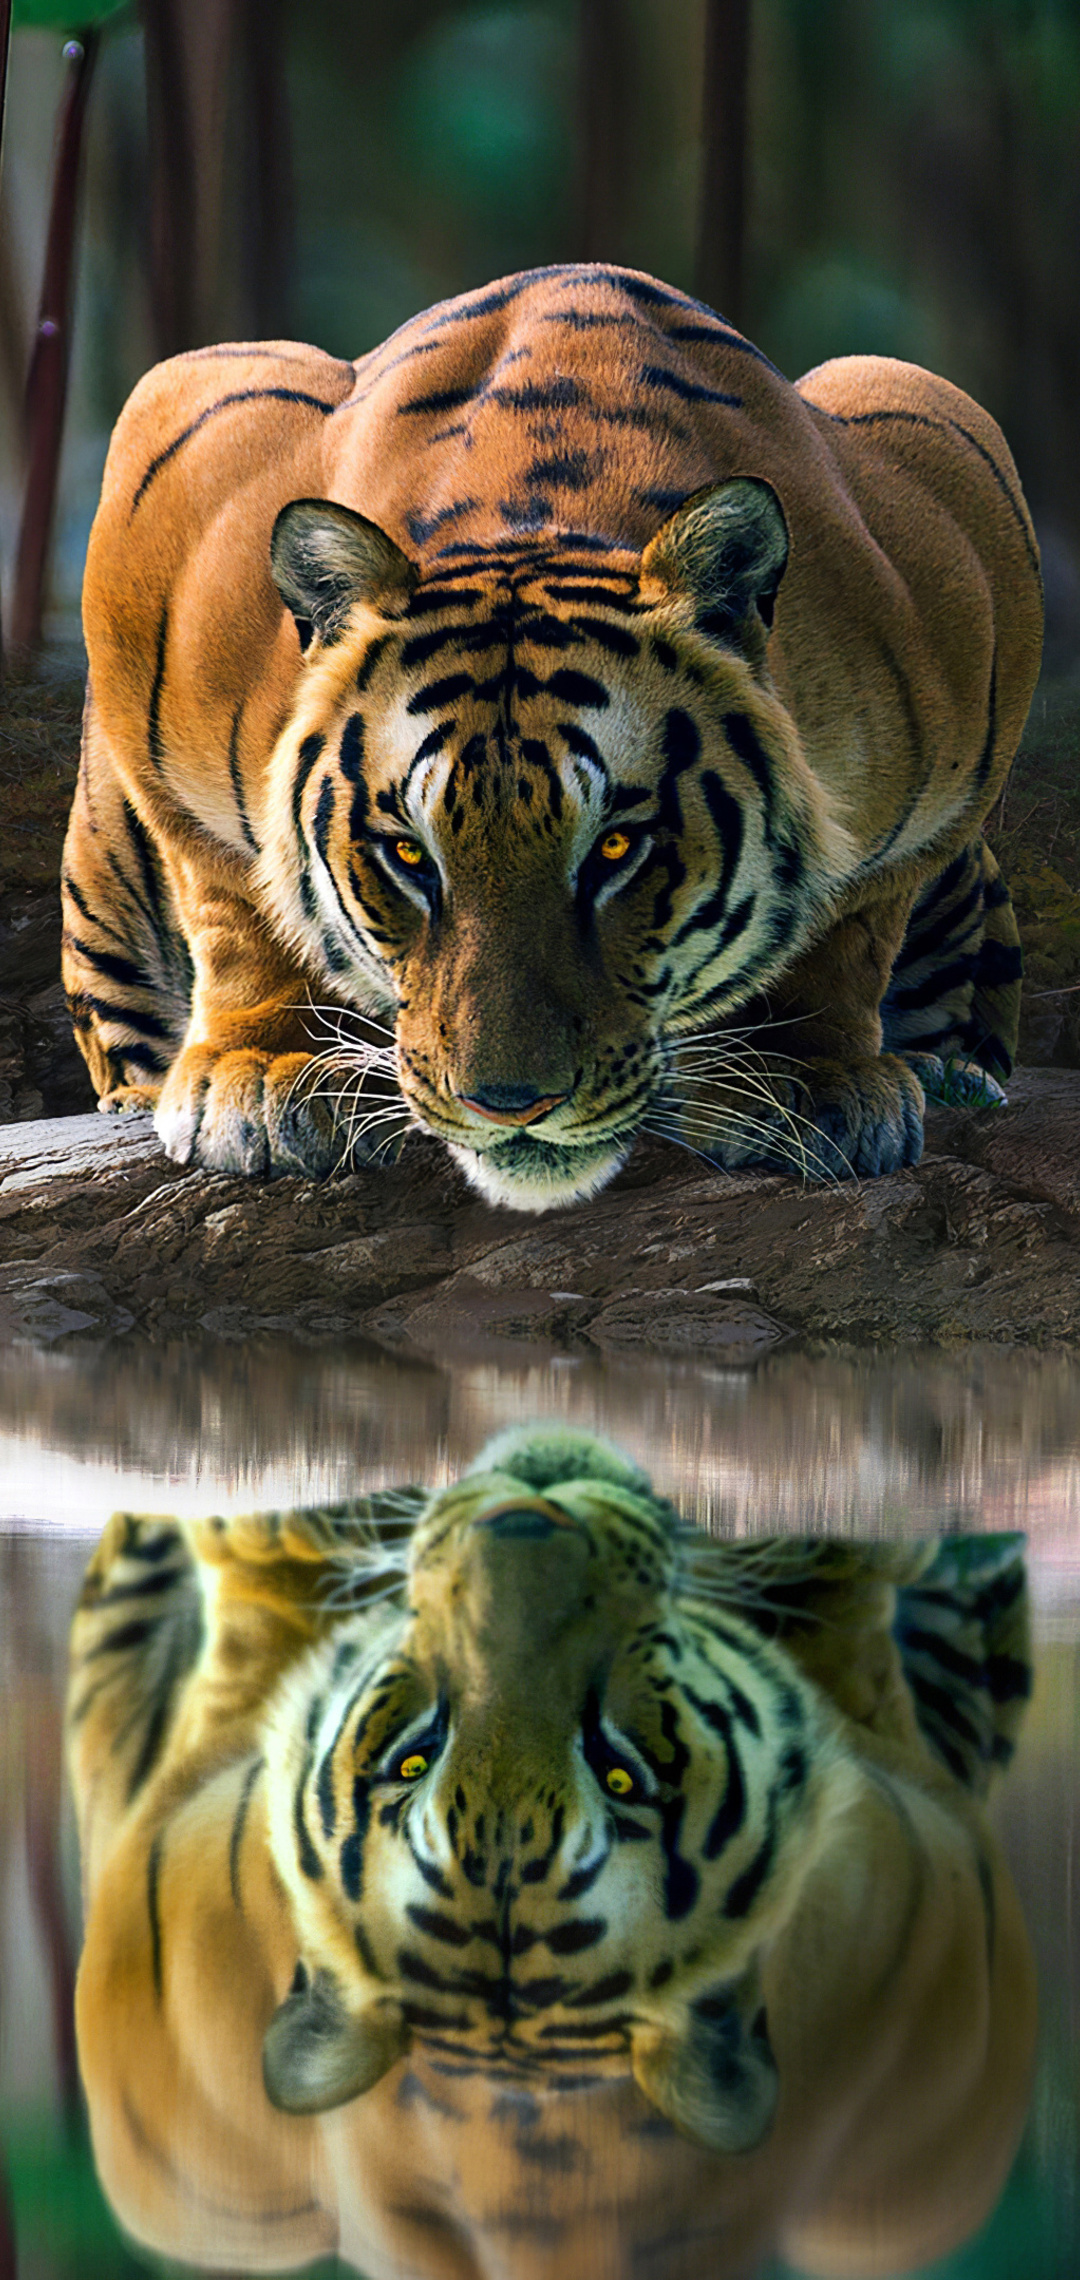 tiger-glowing-eyes-drinking-water-4k-hf.jpg